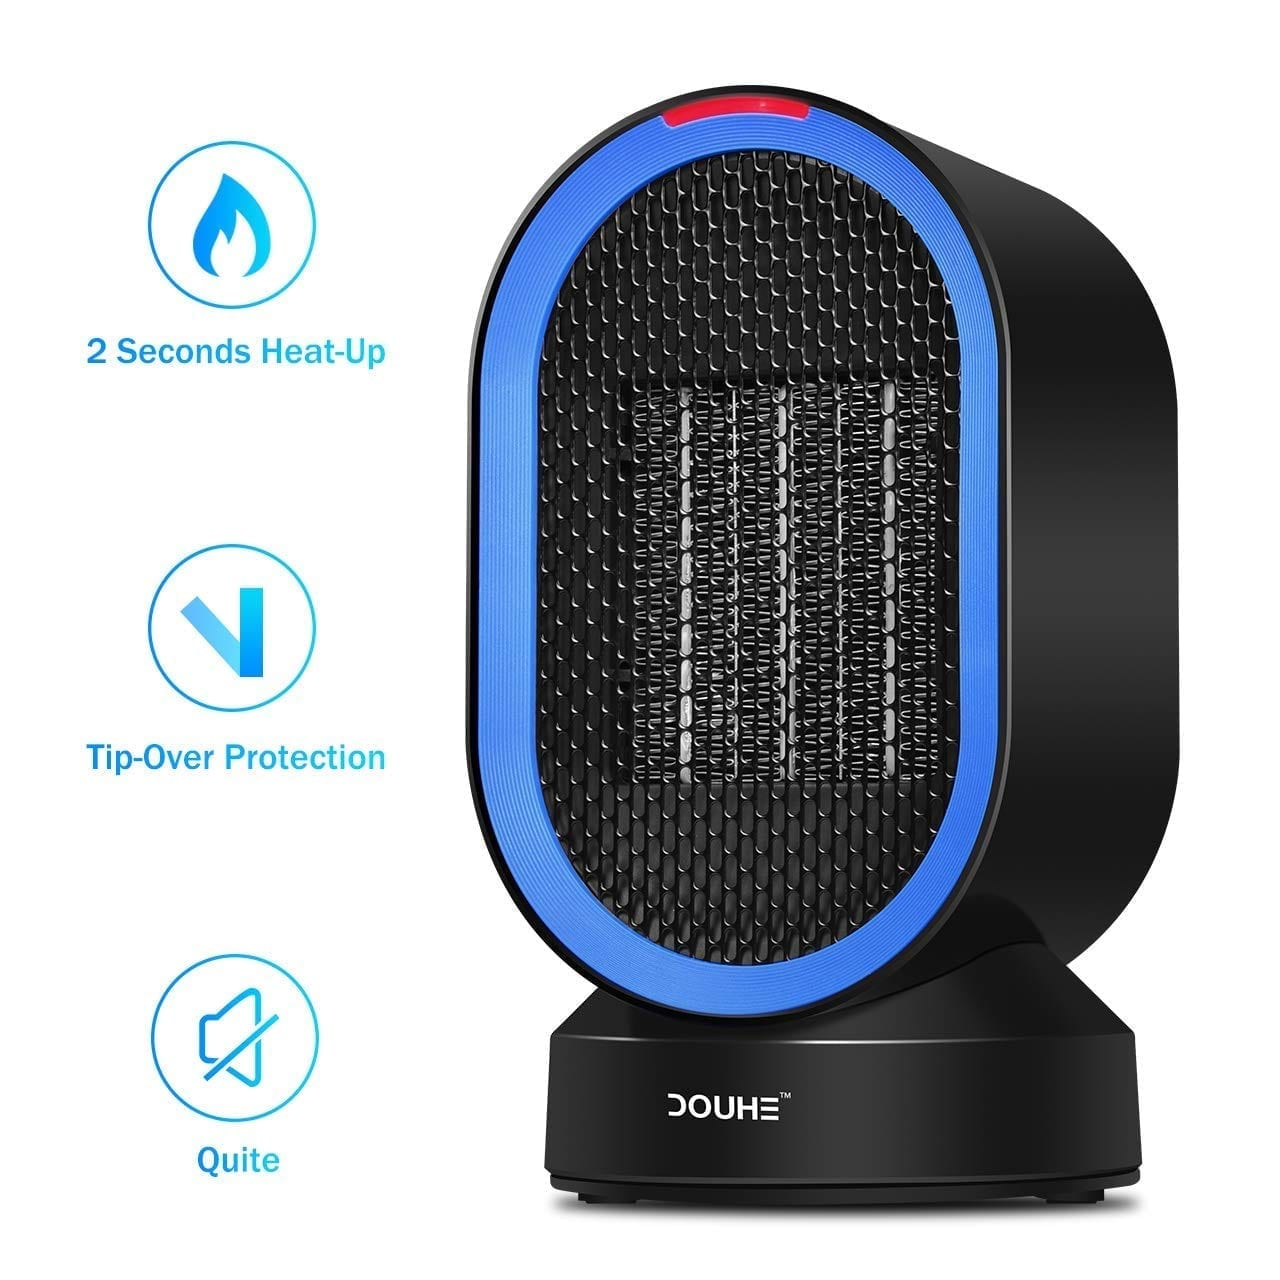 Portable Space Heater, DOUHE Electric COMPACT PERSONAL Heater, 600 Watts of Heat, Swing Mode, Tip-Over and Overheat Protection, Safety for Office Home Floor Under Desk